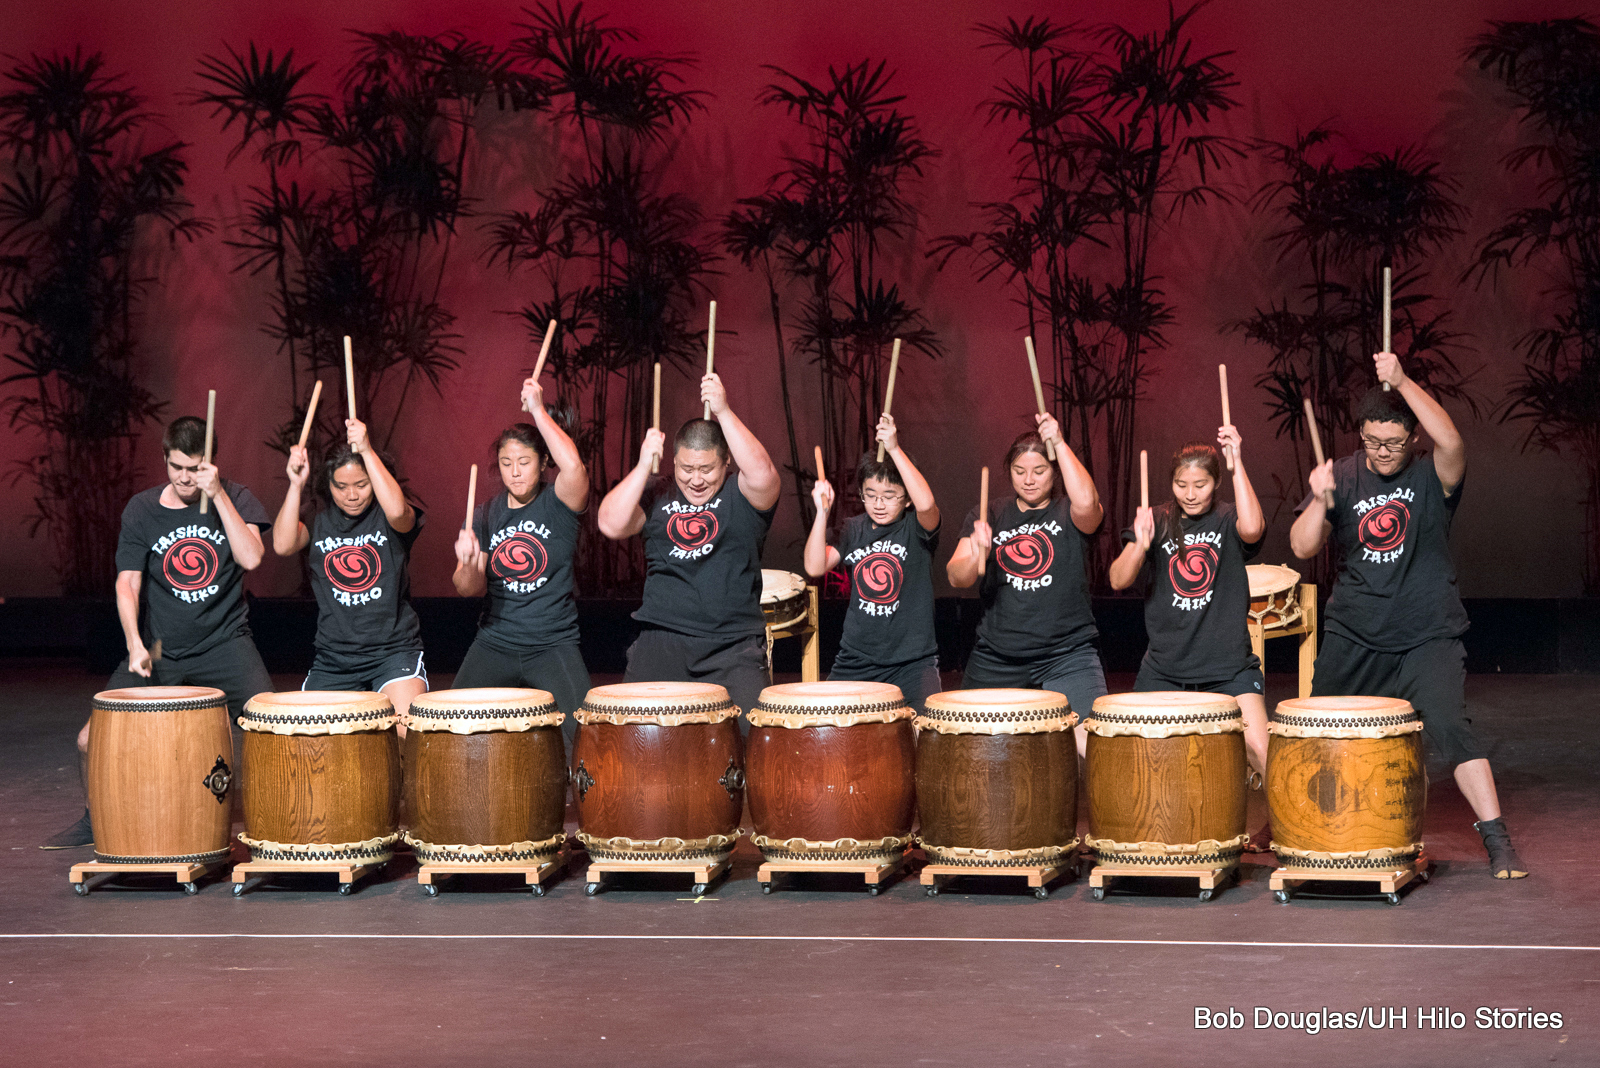 Drummers, black t-shirts, holding sticks in the air, drums in line in foreground.